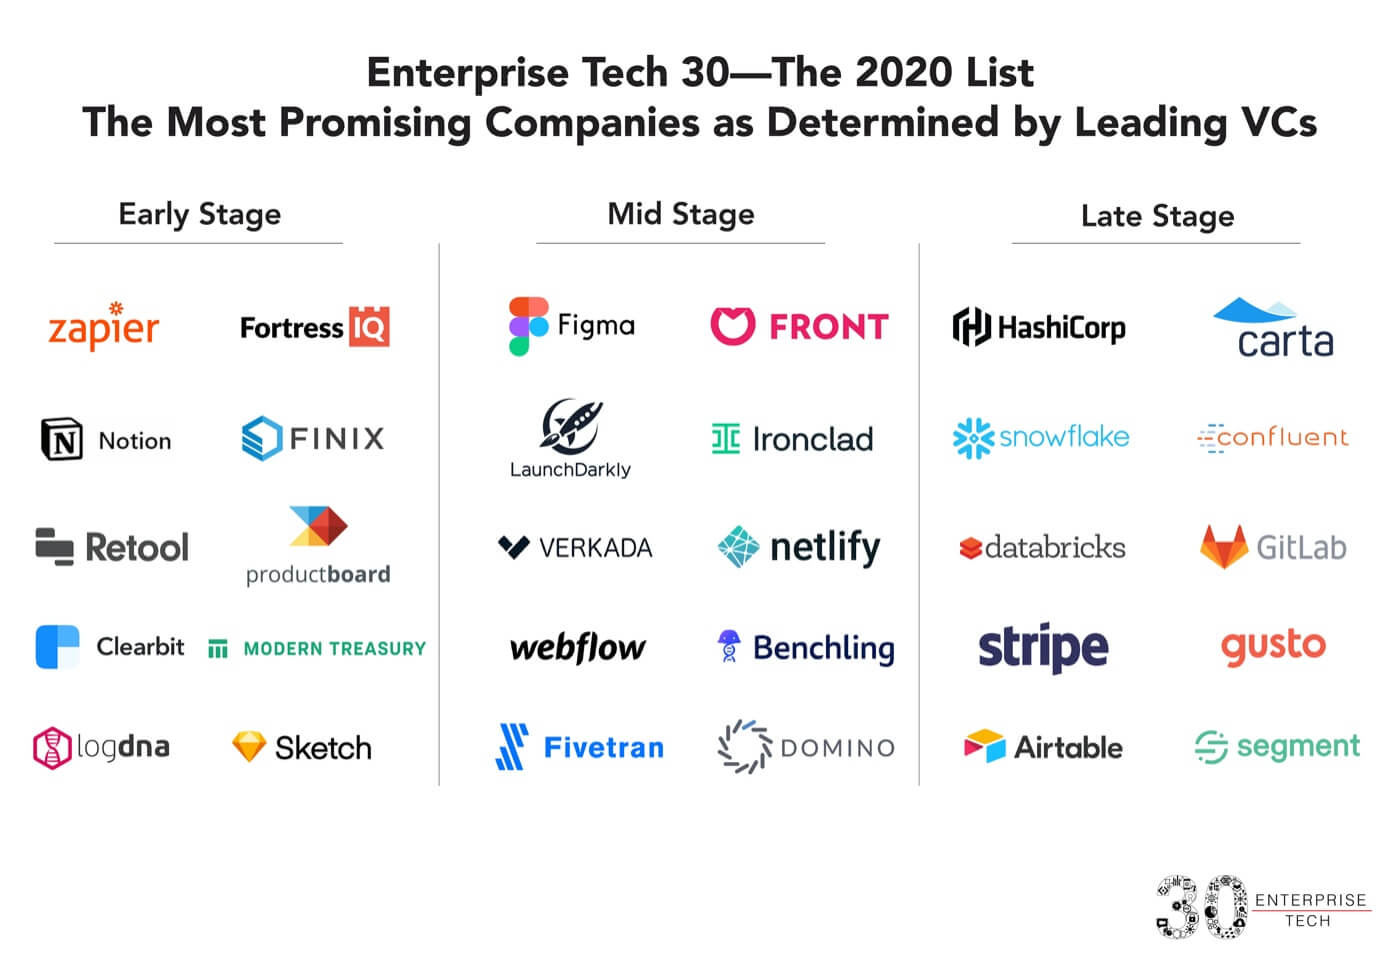 Graphic of the Enterprise Tech 30 2020 listed by early, mid and late stage